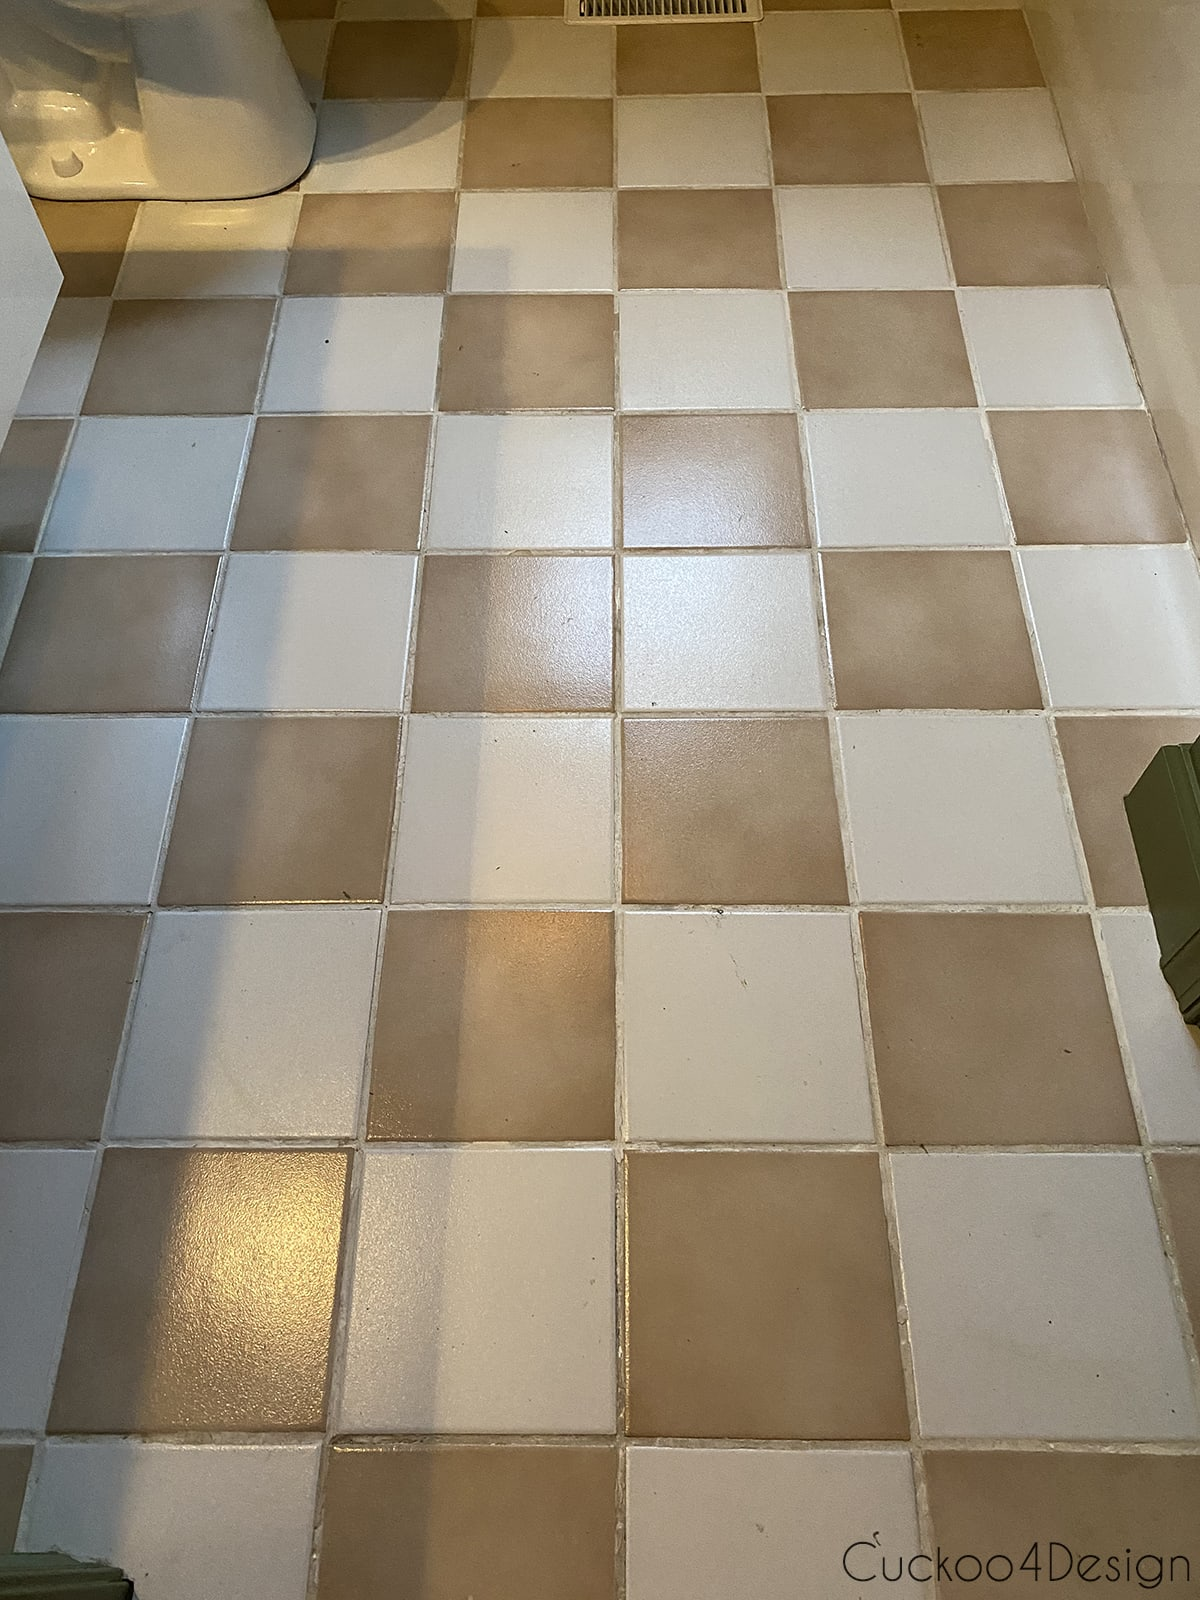 view from above of entire old ceramic floor before applying cheap peel and stick floor tile